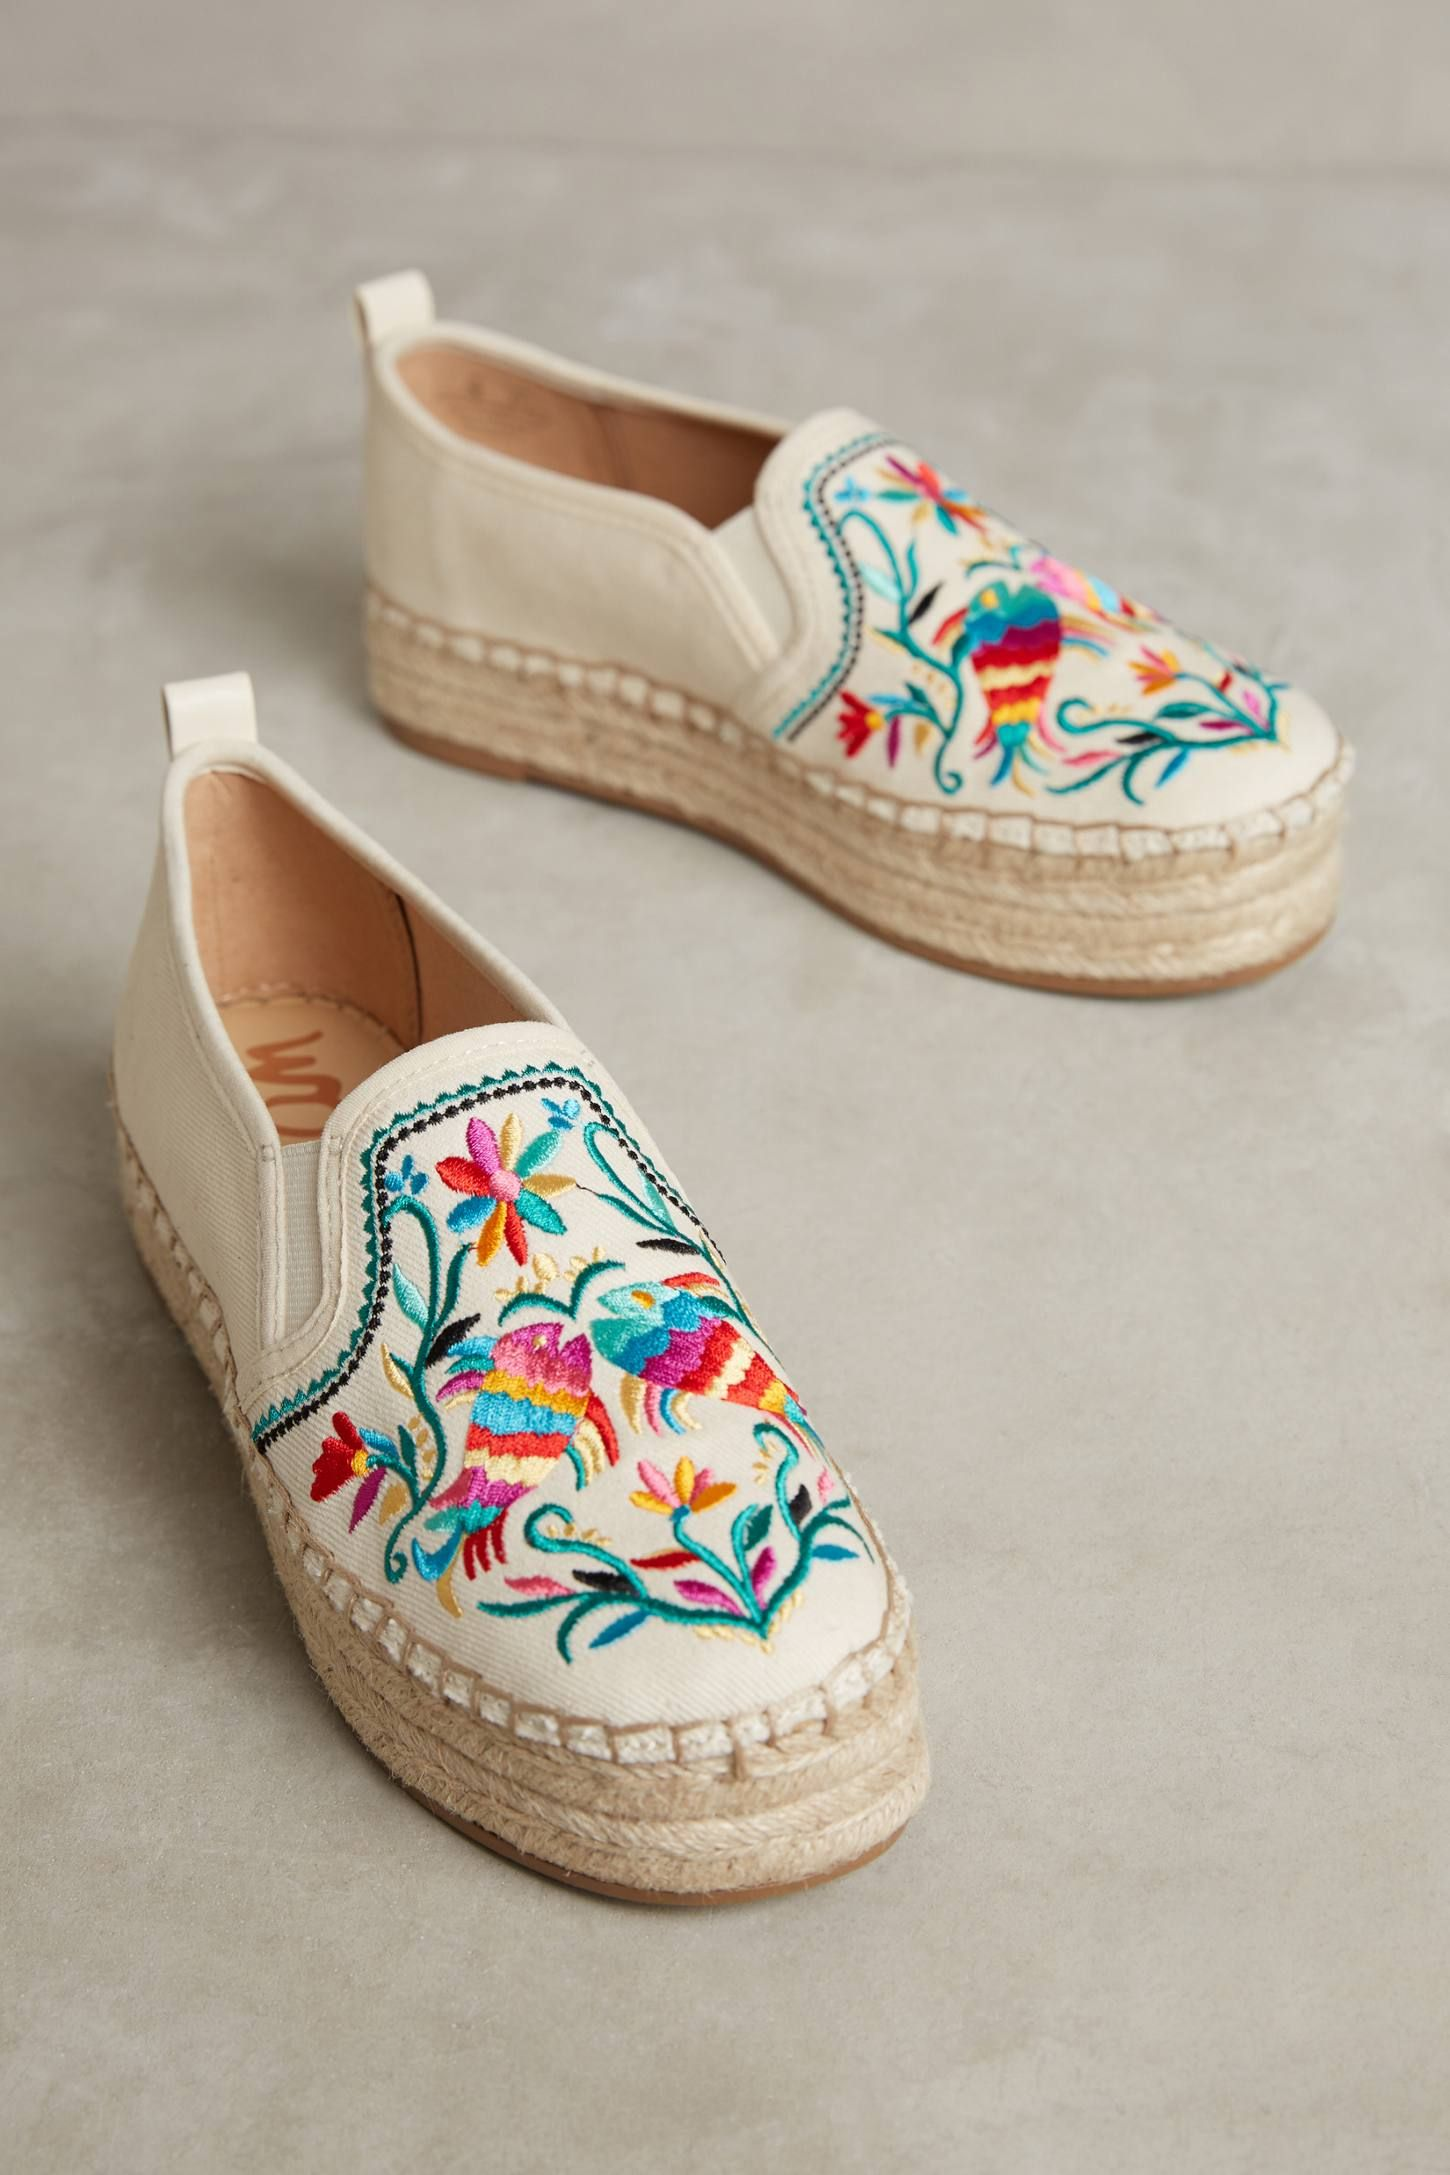 Sam Edelman Embroidered Canvas Espadrilles w/ Tags sale classic cqv2Iy8o